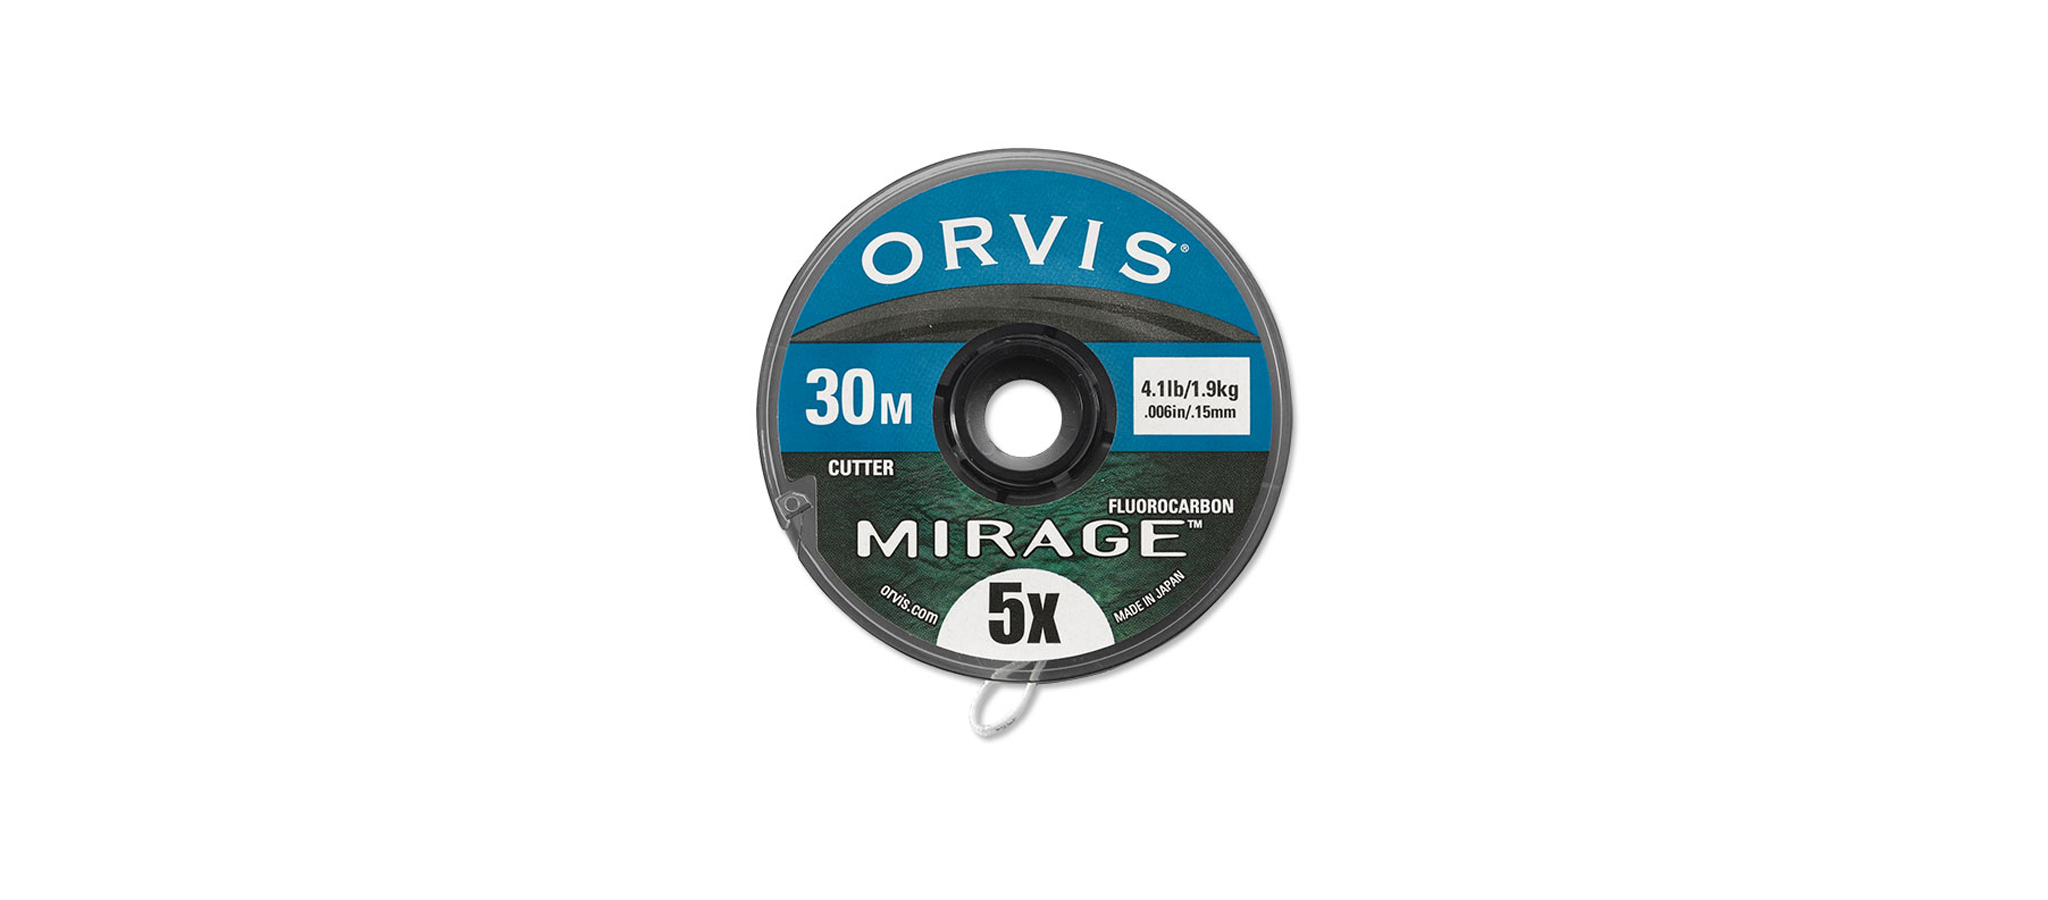 Orvis-Mirage-Fluorocarbon-Vorfachmaterial-Tippet-Spule